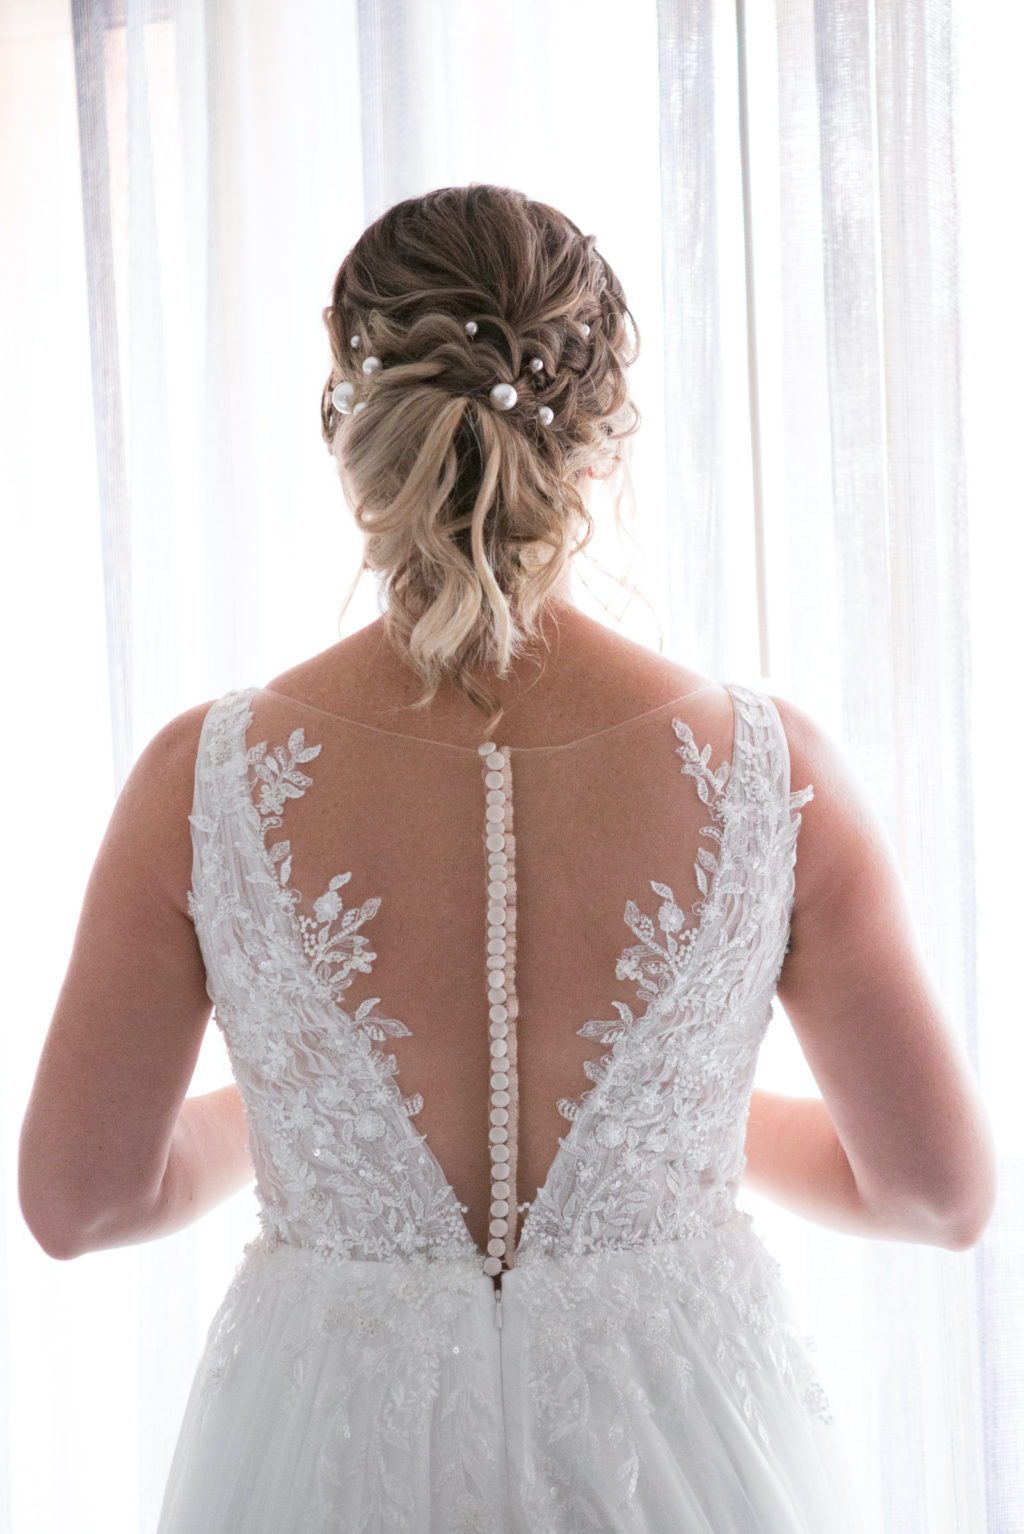 Clearwater Beach Bride in Delicate Floral Lace, Illusion V Back and Rhinestone Buttons, Updo Hairstyle with Pearls   Tampa Bay Wedding Photographer Carrie Wildes   Wedding Hair and Makeup Femme Akoi Beauty Studio   Wedding Dress Truly Forever Bridal